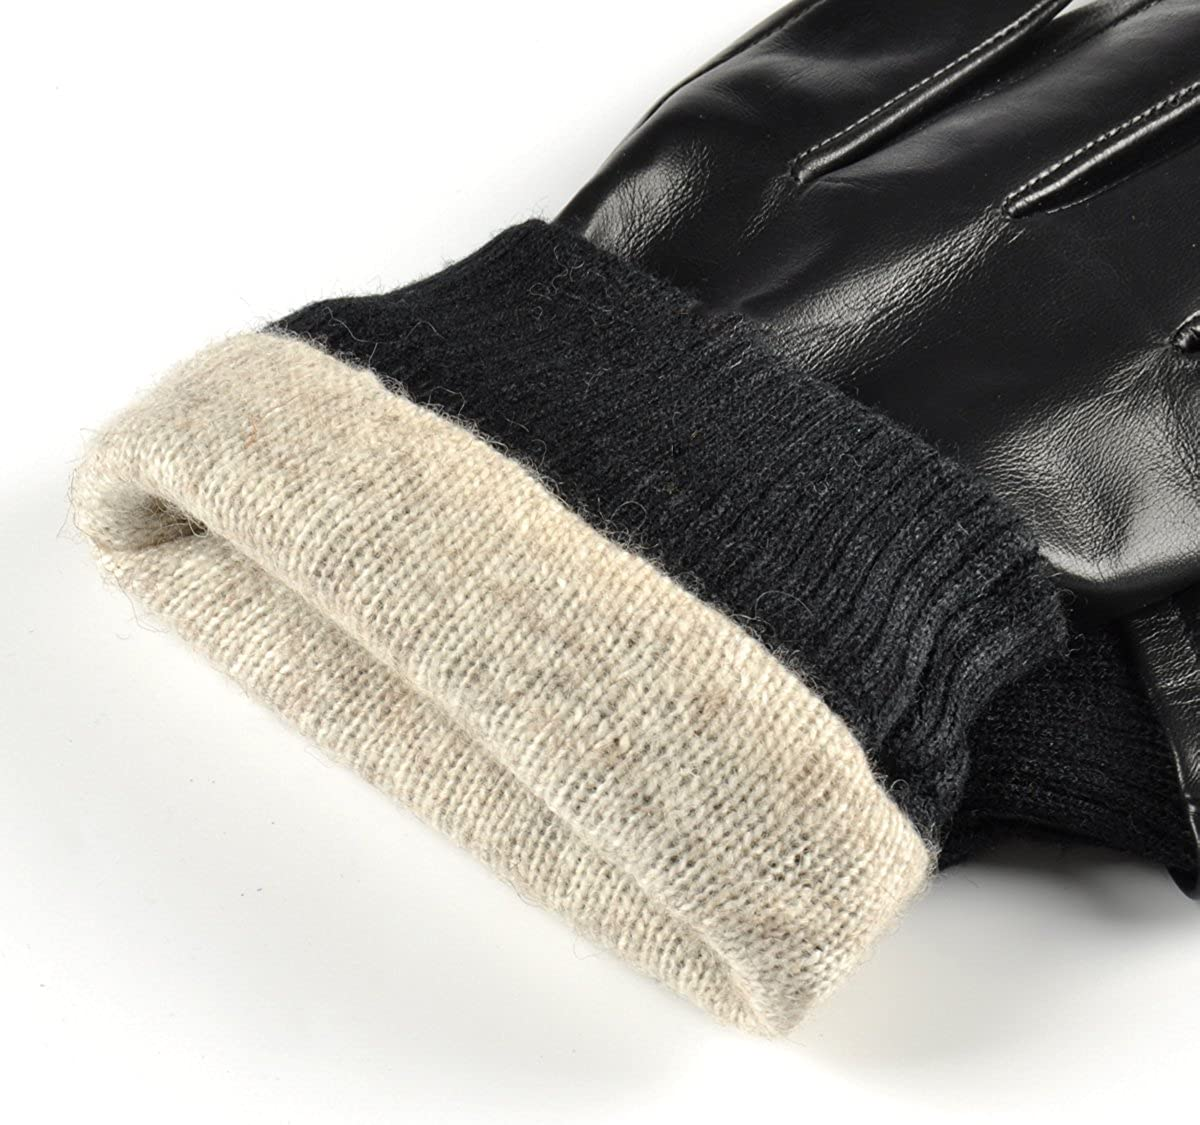 SIEFERSN Rib Cuff Mens Lambskin Whole Hands Touchscreen Gloves Winter Warm Driving Leather Gloves 1154225010